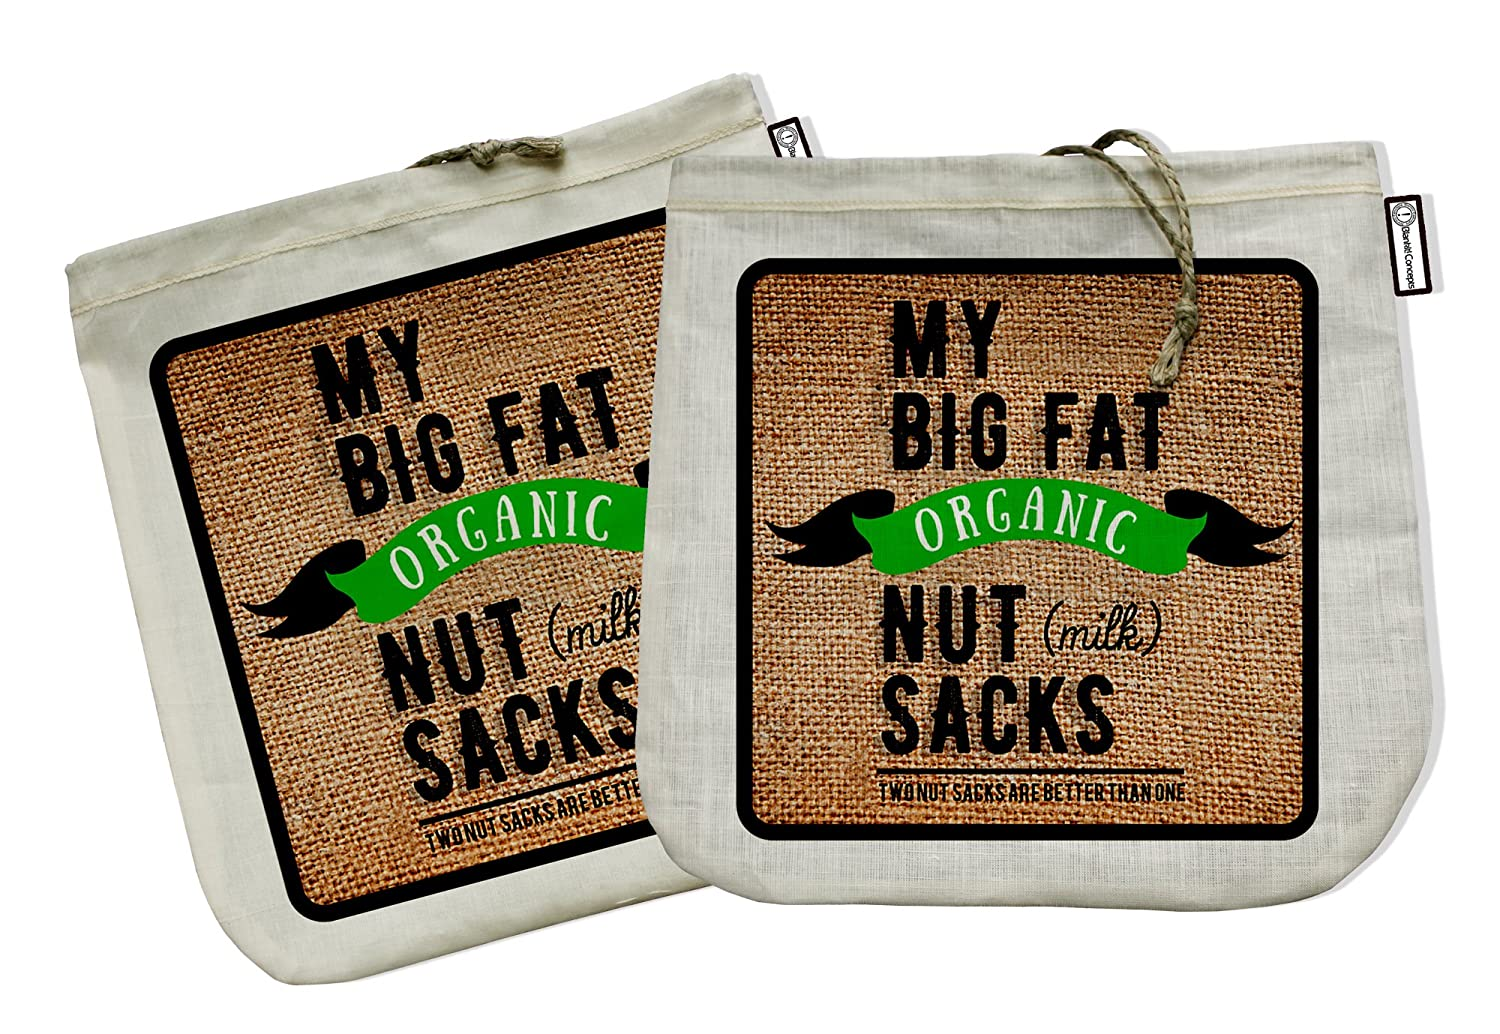 My Big Fat Organic Nut (milk) Sacks. Set of 2 Bags (12